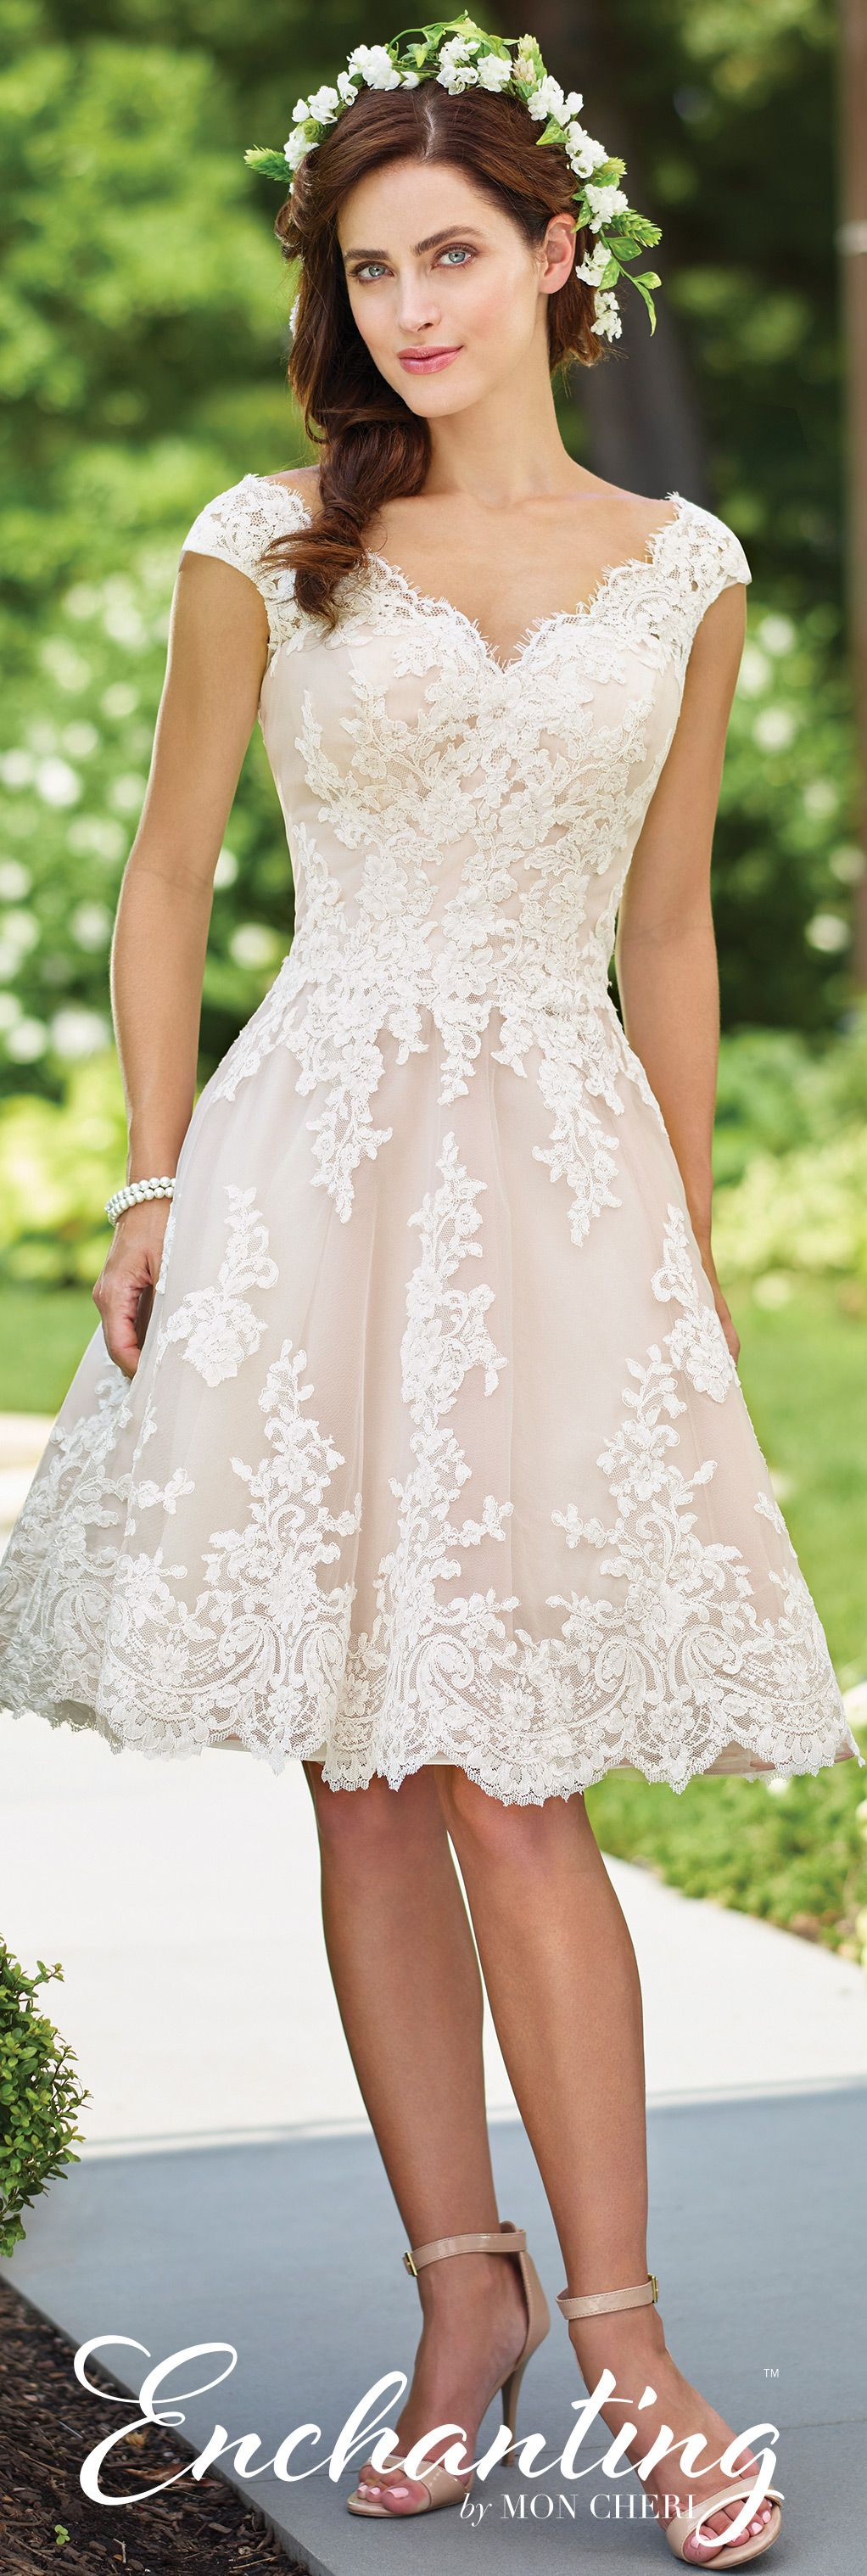 Knee length wedding dress enchanting by mon cheri short